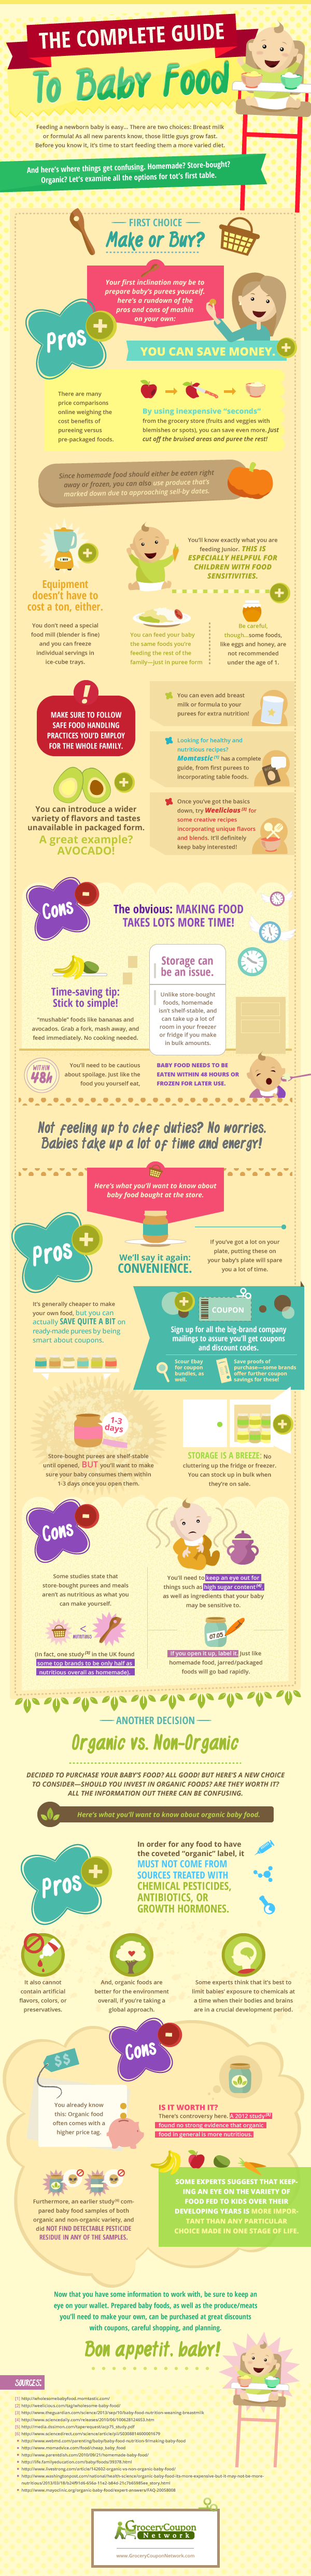 Parents' Complete Guide to Baby Food